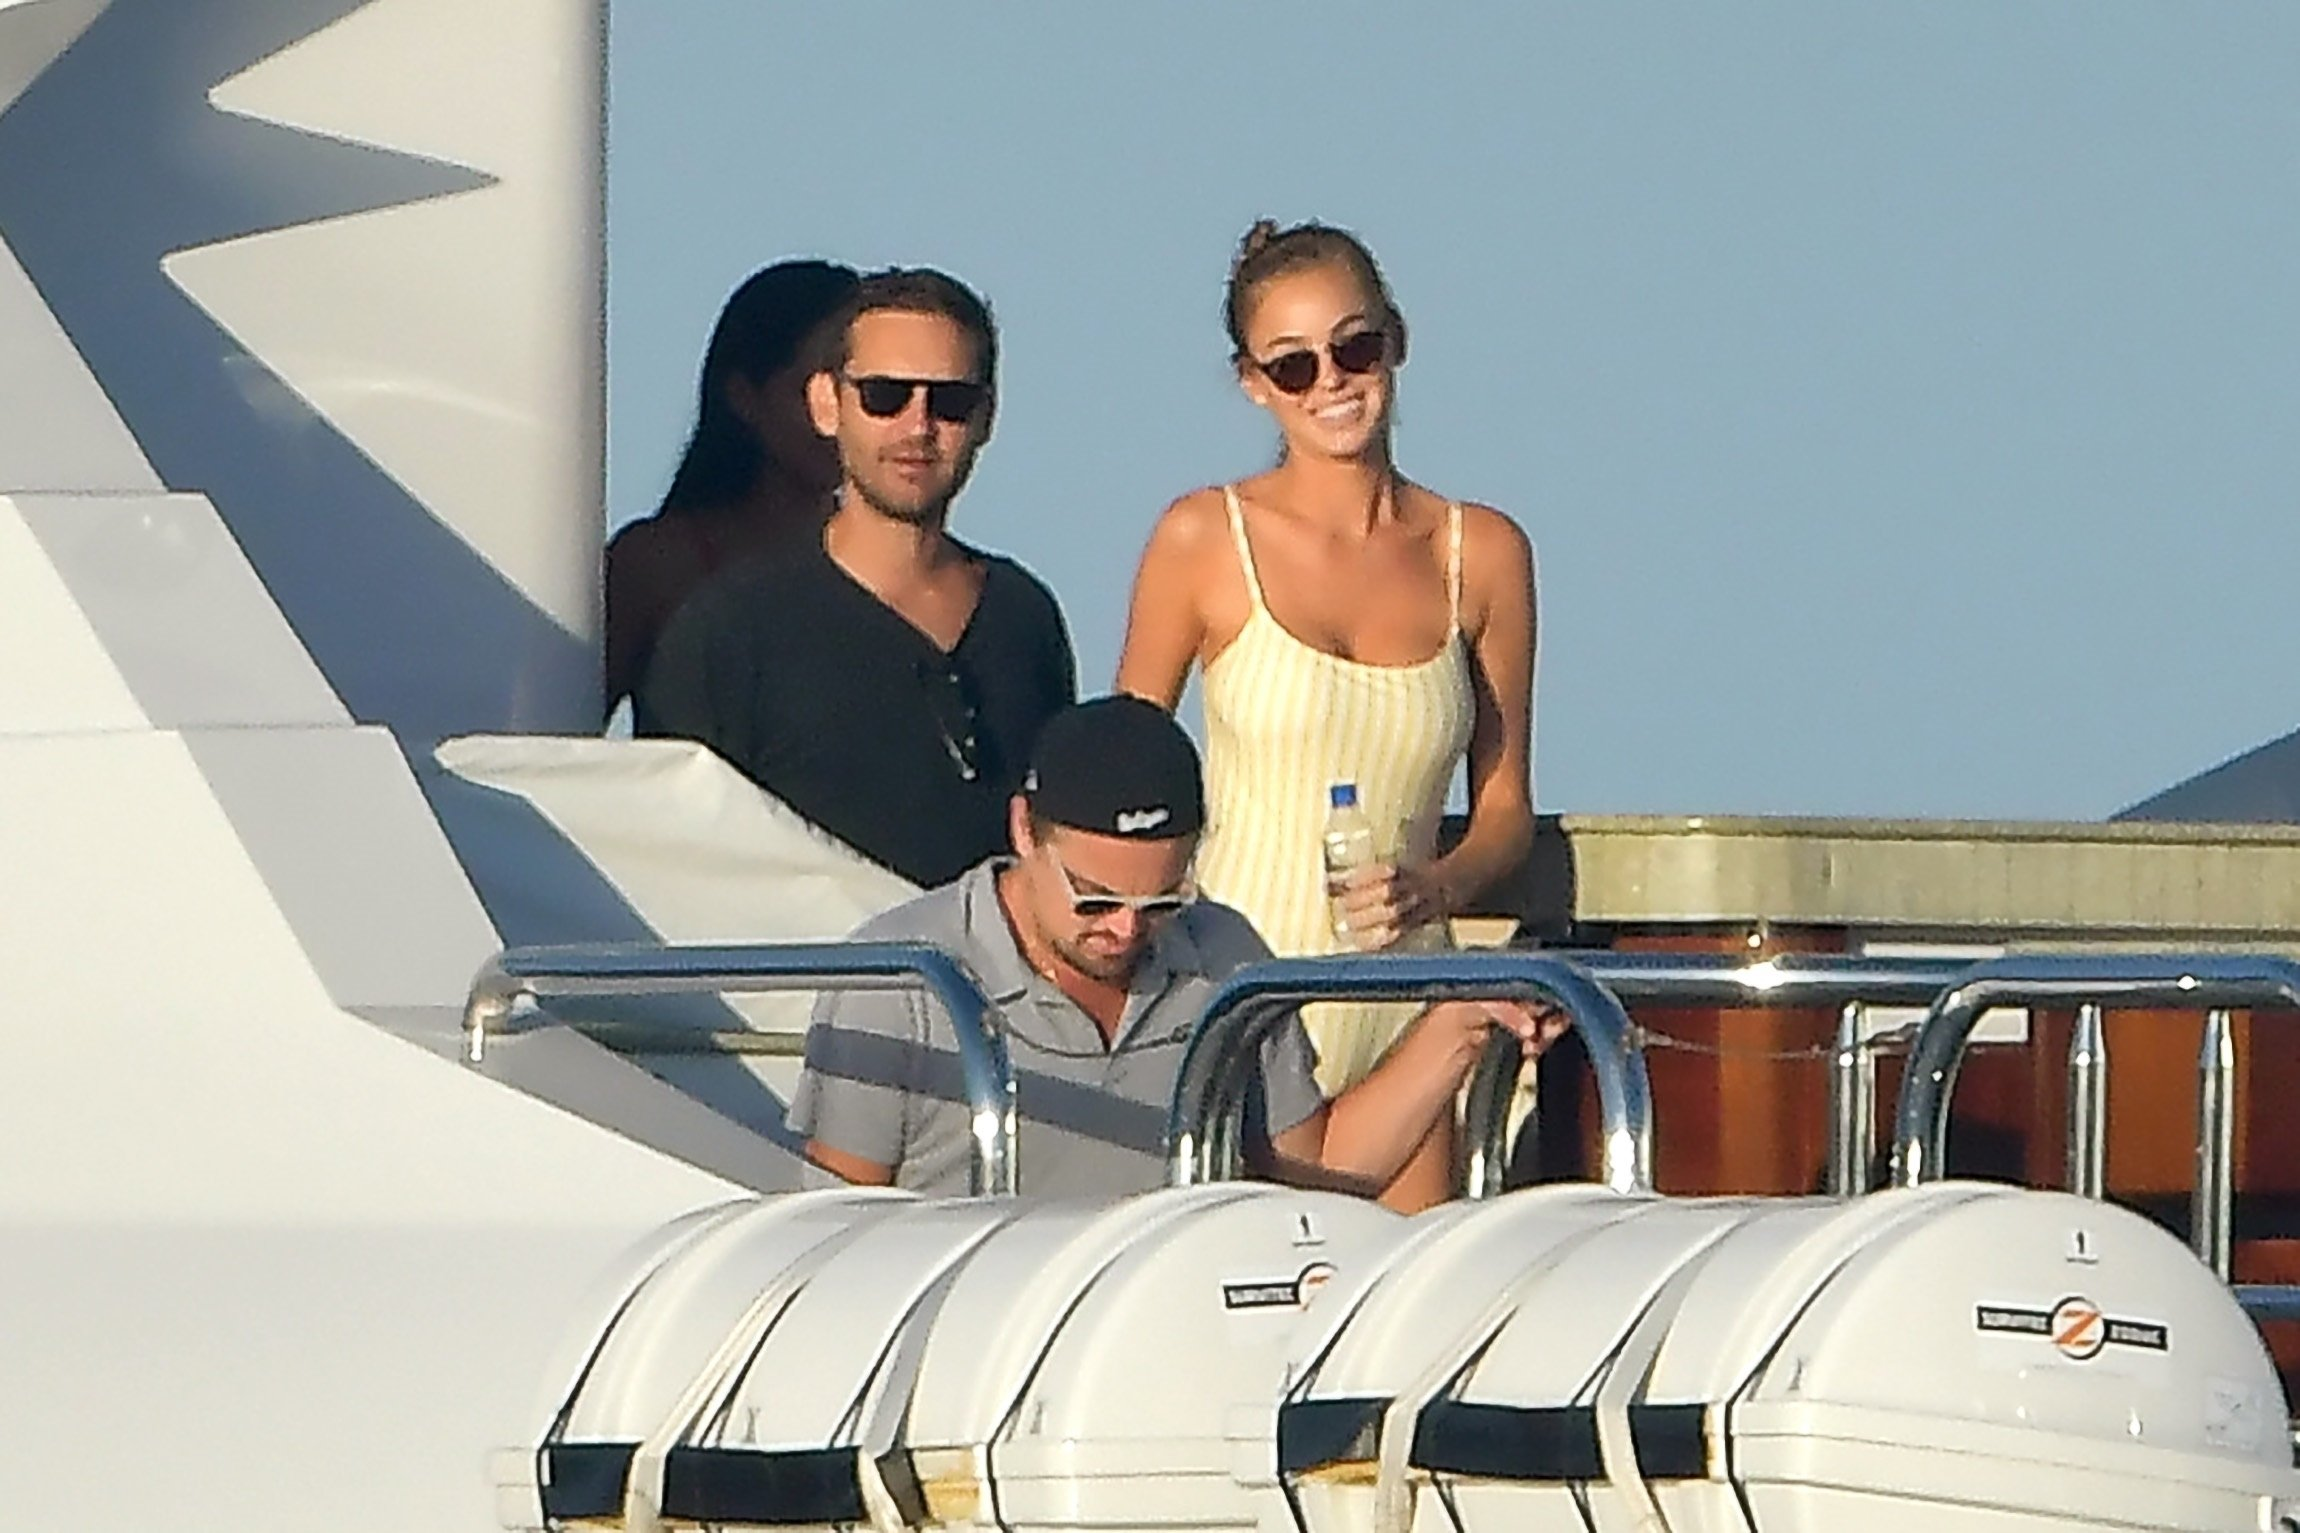 Leonardo DiCaprio and Tobey Maguire spotted living the bachelor dream as they party on a yacht